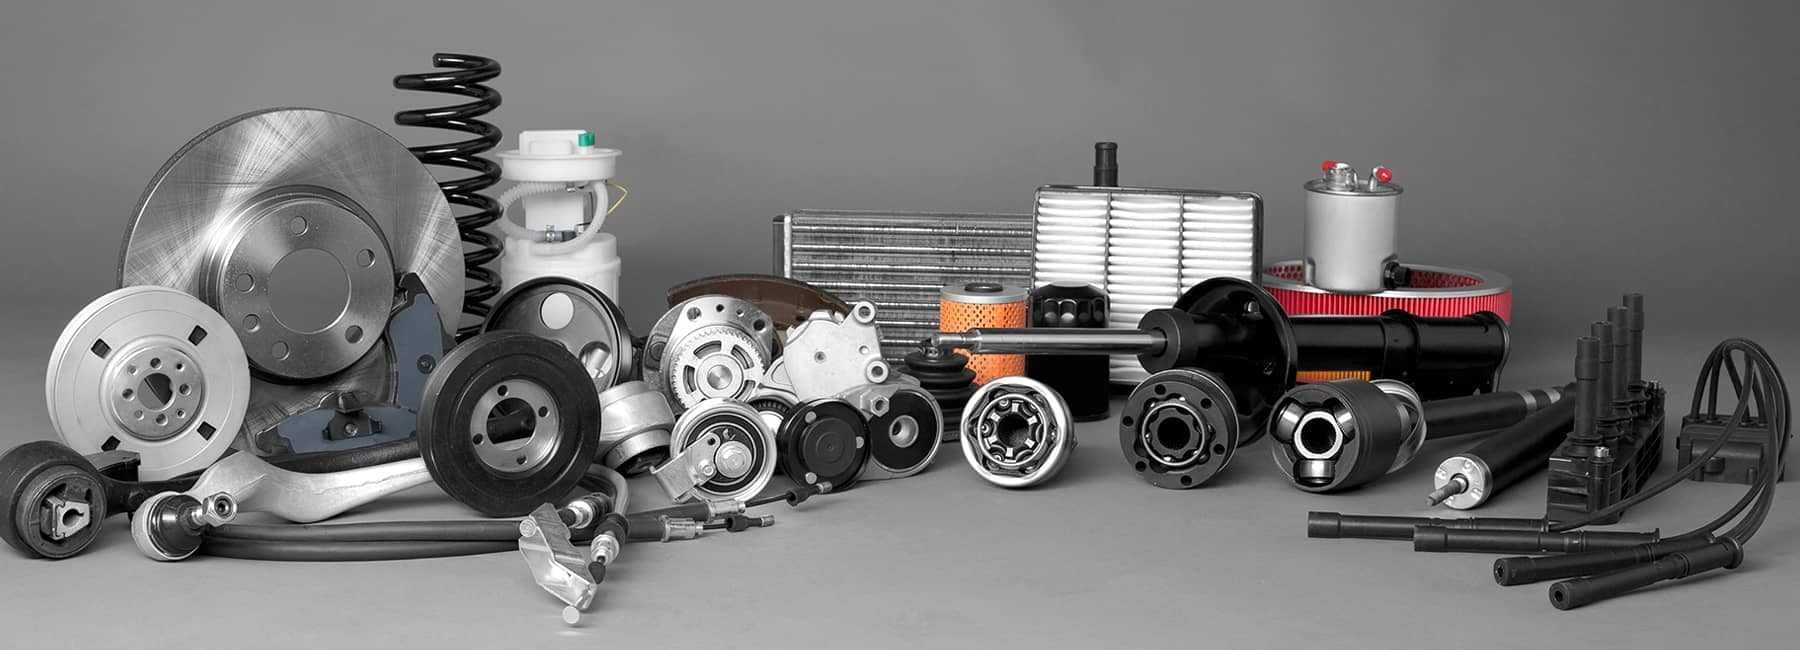 Various Car Parts on Grey Background